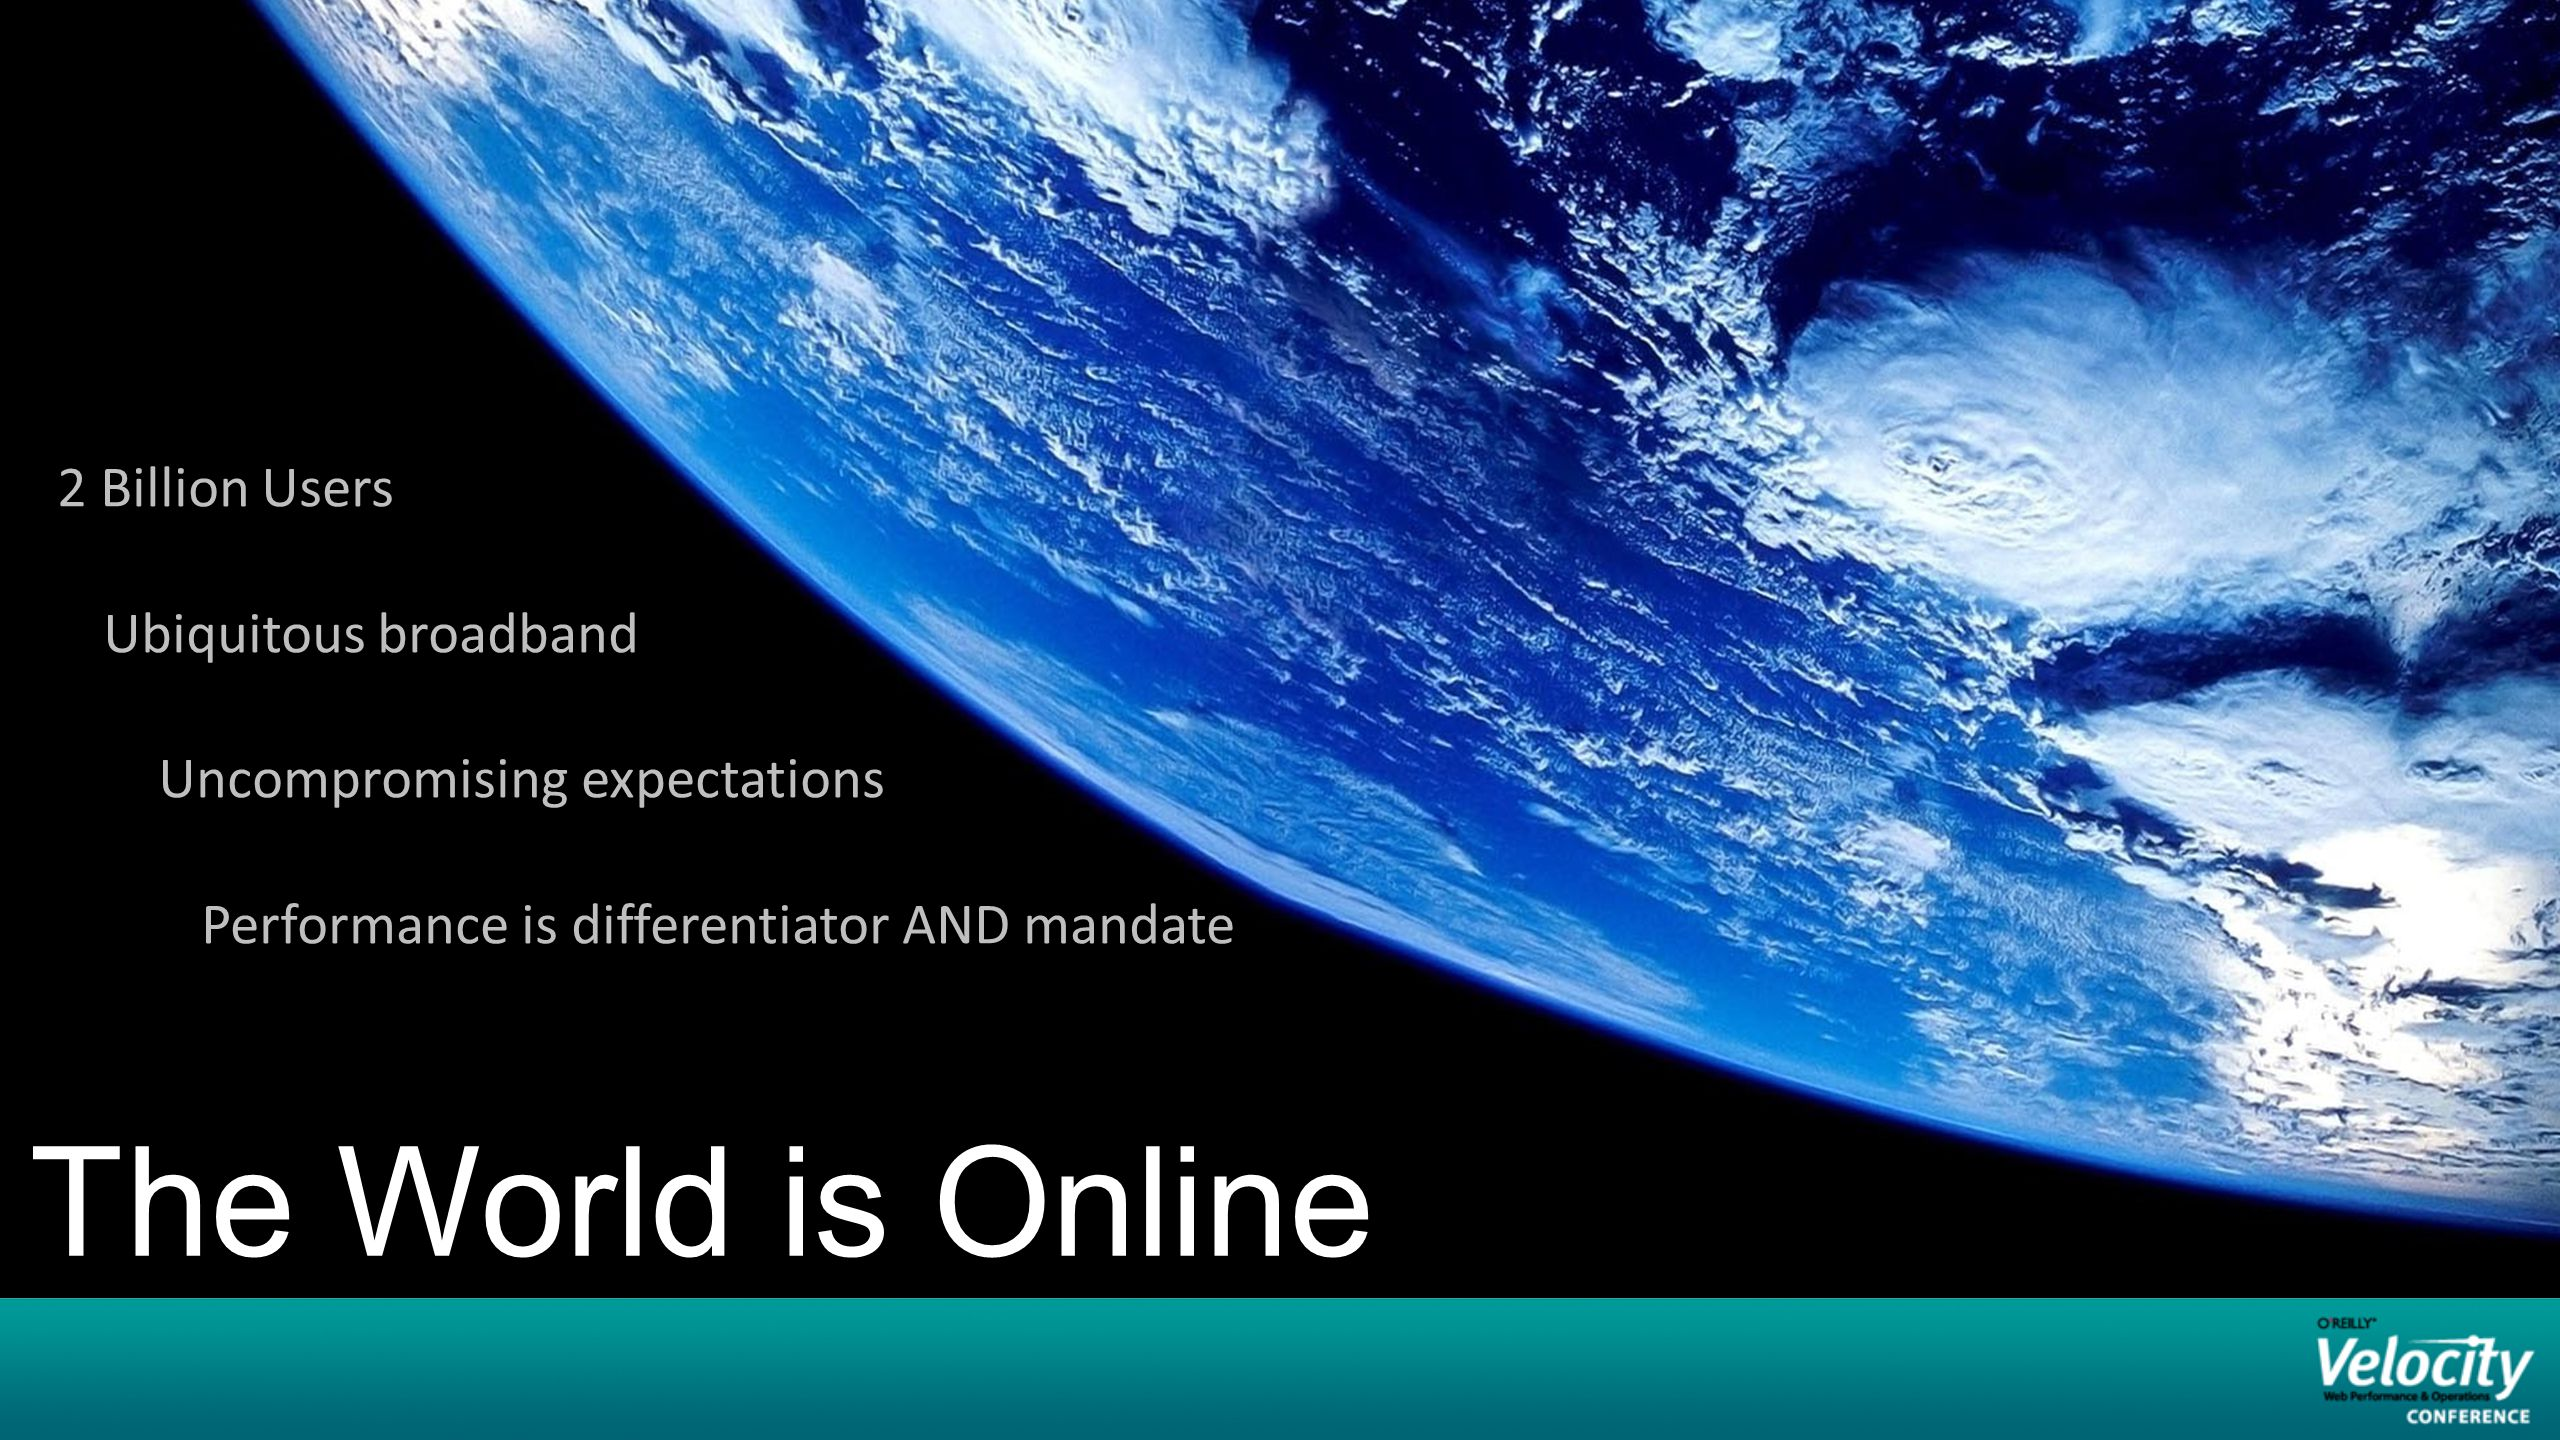 The World is Online 2 Billion Users Ubiquitous broadband Uncompromising expectations Performance is differentiator AND mandate